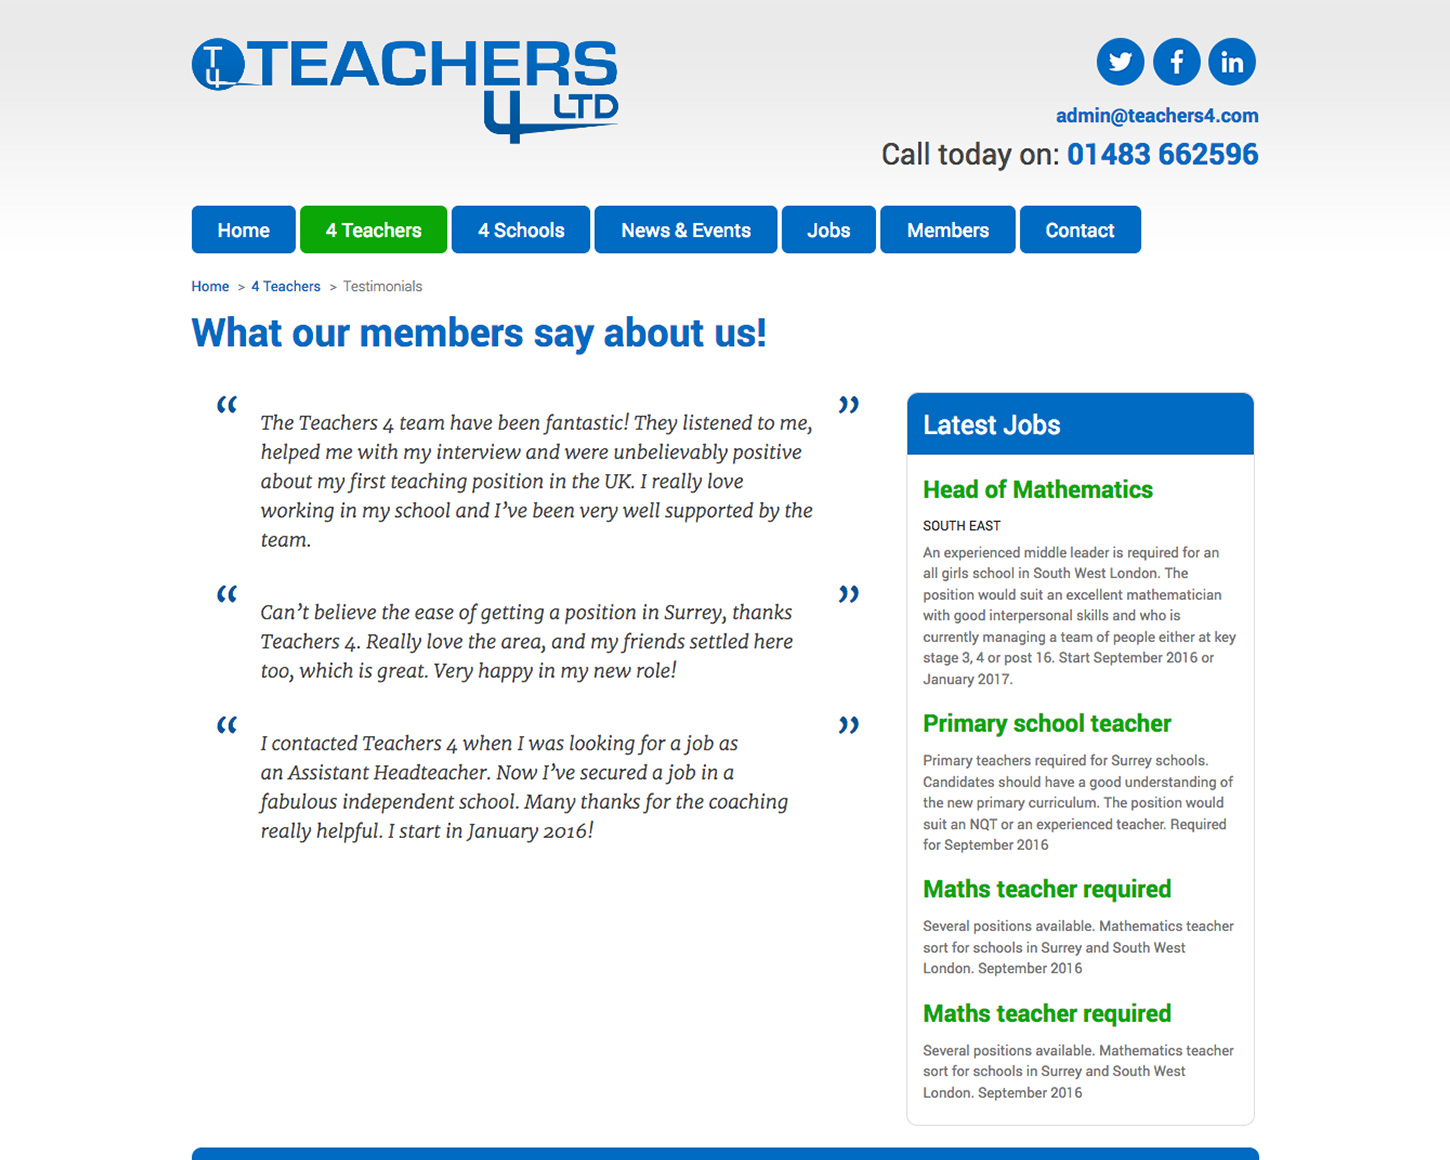 Teachers 4 website